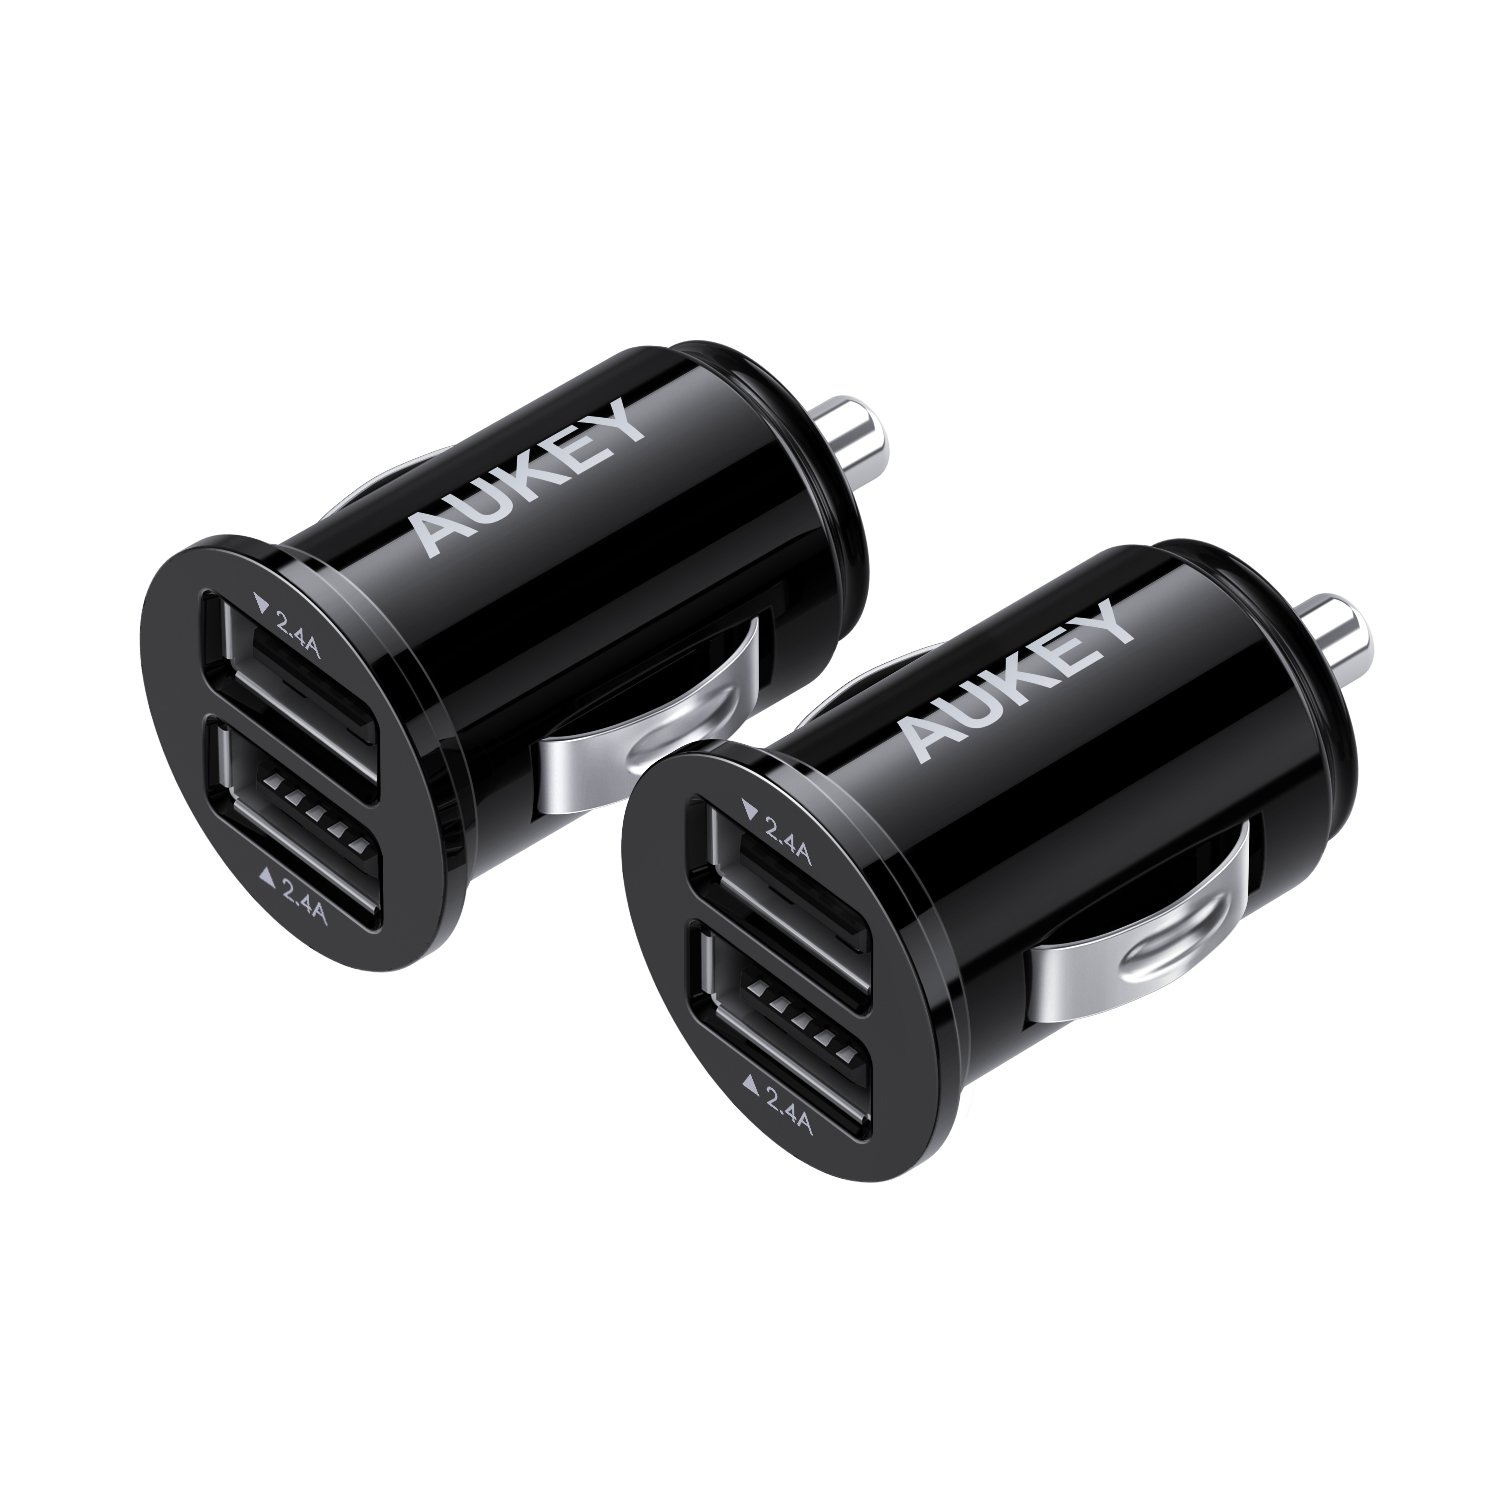 AUKEY Car Charger, ULTRA COMPACT Dual Port 4.8A Output (2-Pack) for iPhone iPad Samsung & Others - Black